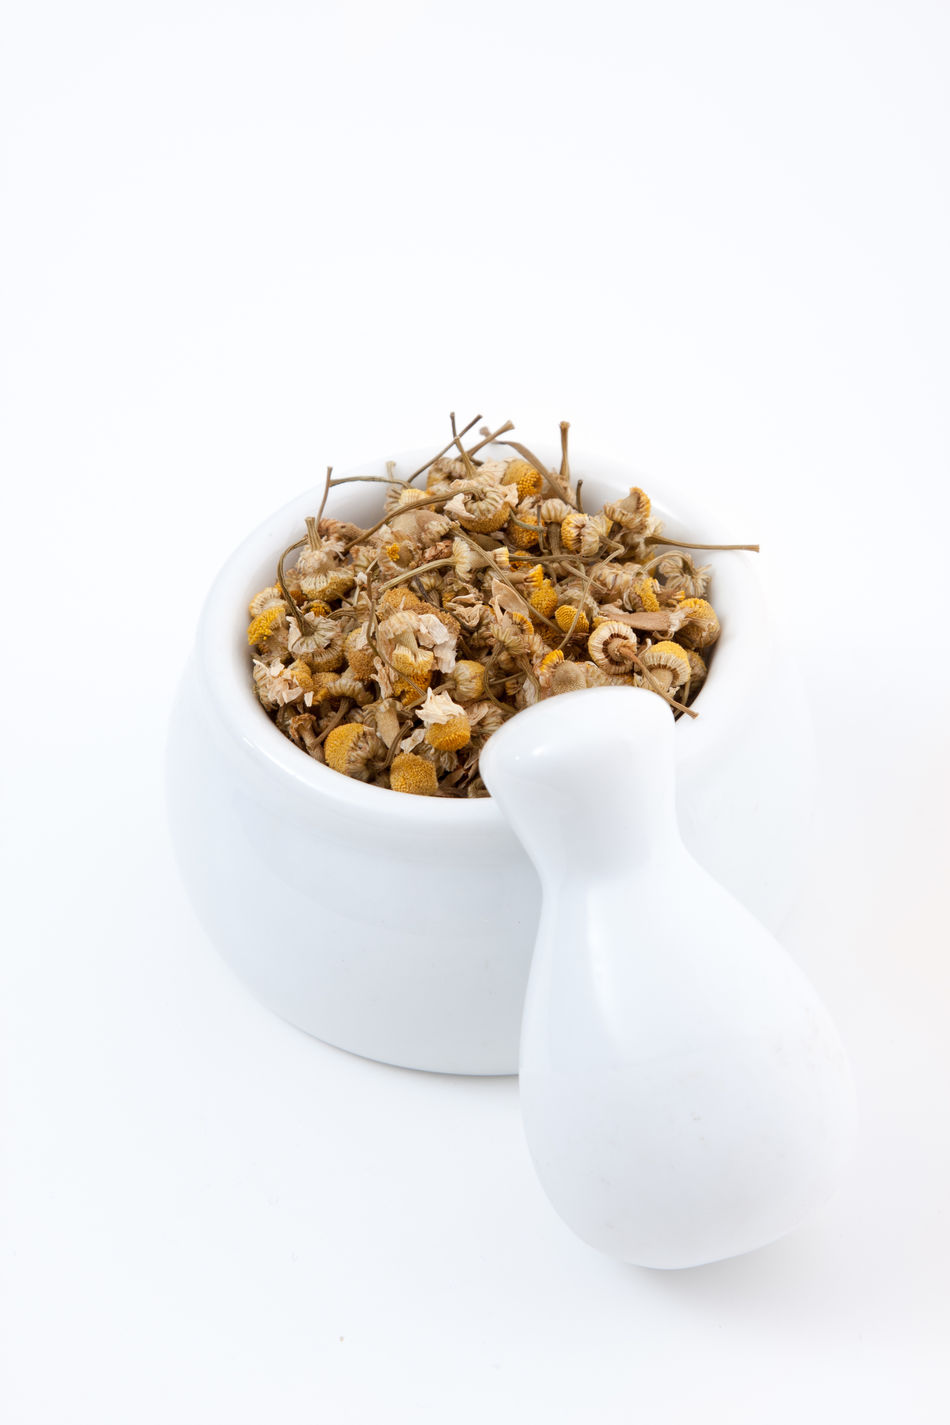 Fine dried chamomile in mortar Camomile Camomile Tea Chamomile Chamomile Tea Healing Plant Herb Herbalism Isolated White Background Mortar Mortar And Pestle Natural Cure Natural Healing Plant Natural Medicine Nature Cured Naturopathy White Background